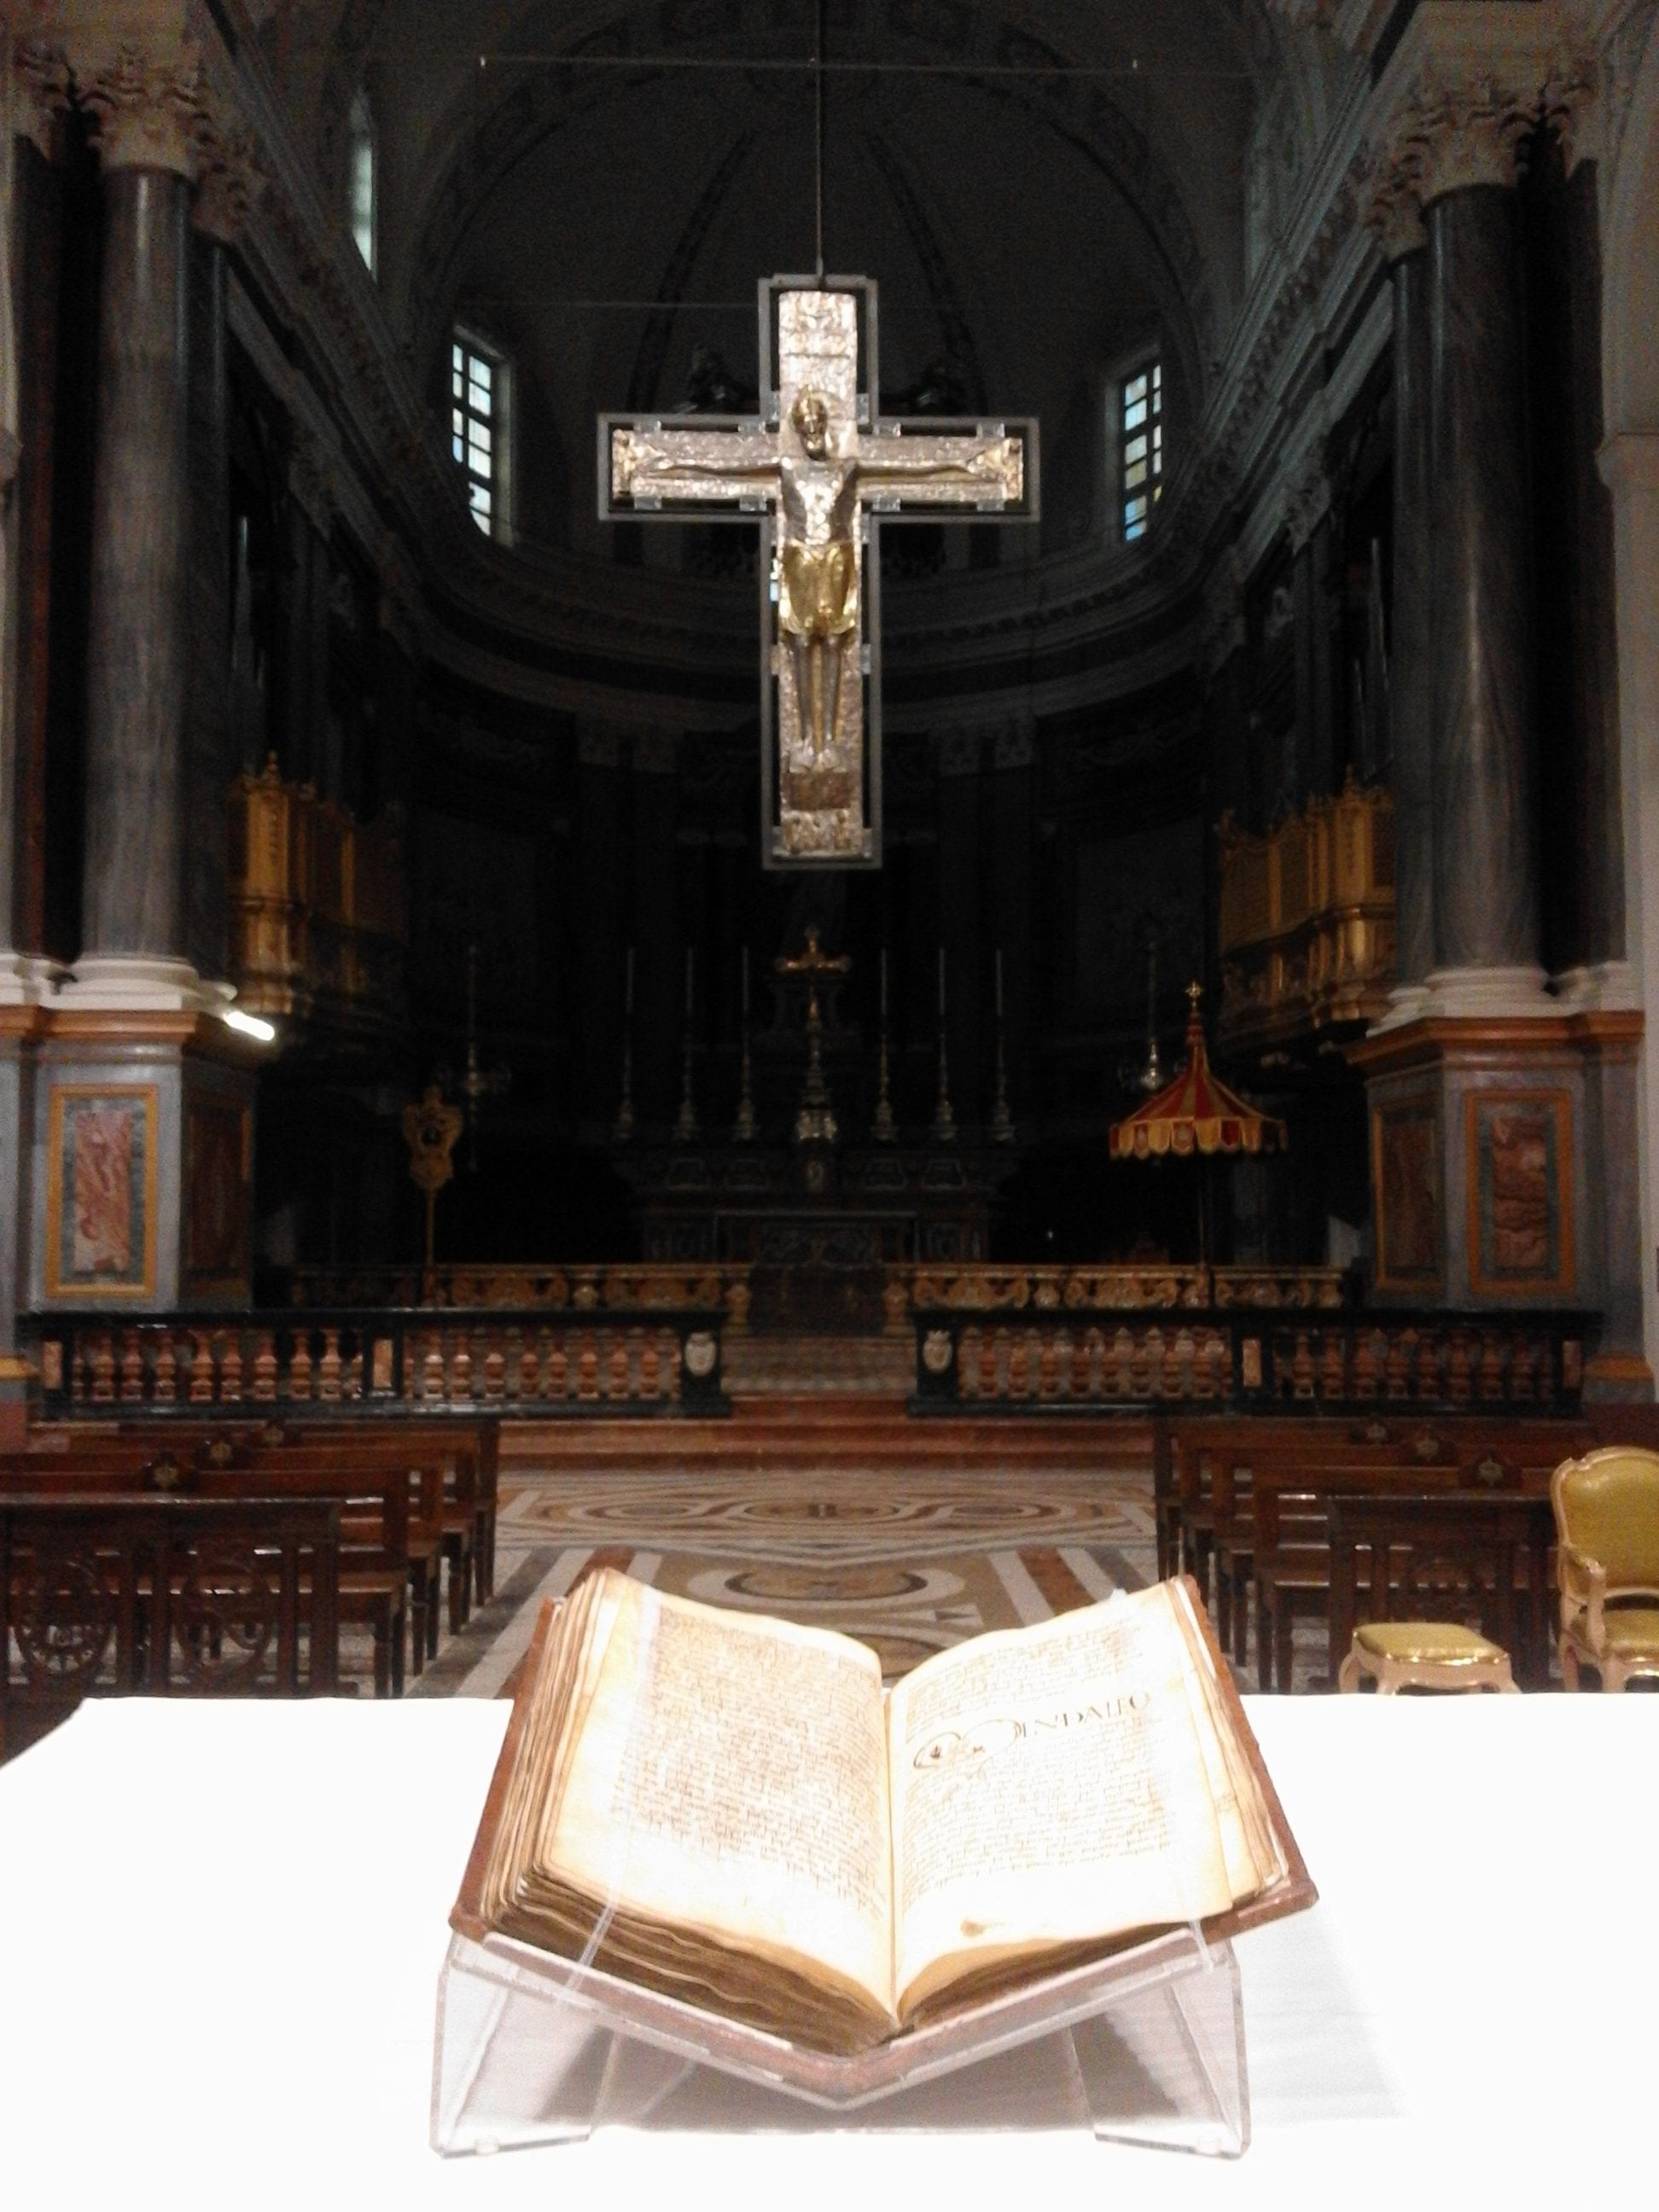 The  Vercelli Book and Vercelli Cross